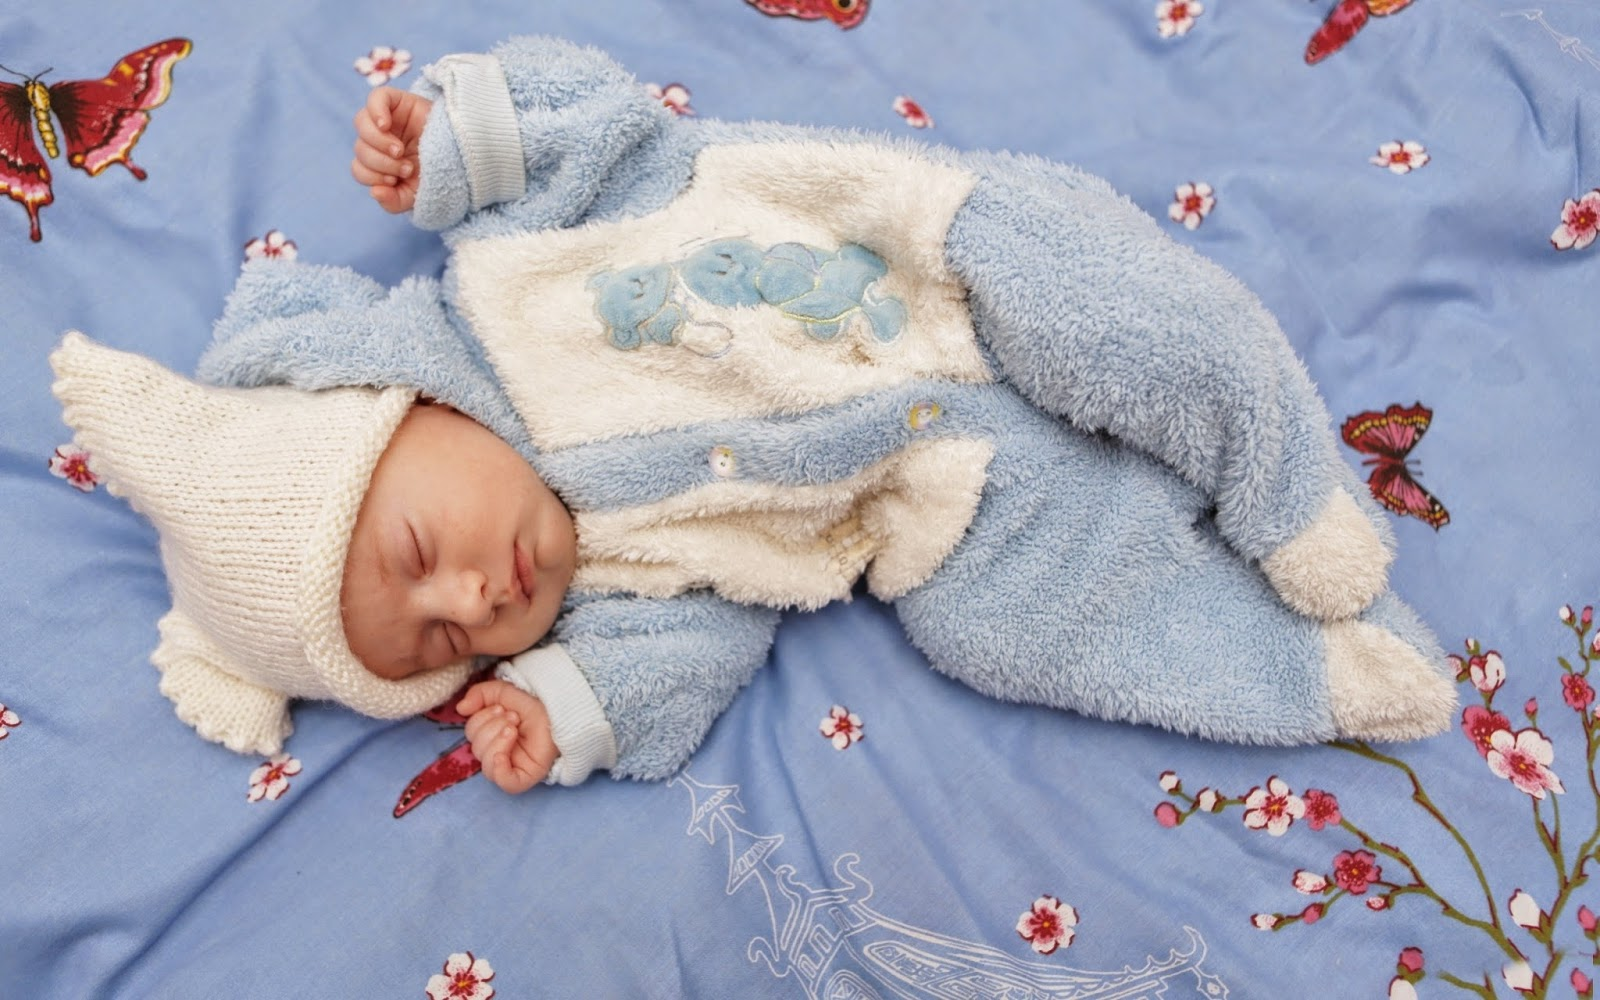 Baby-dressed_in-blue-white-sleeping-butterfly-sheet.jpg